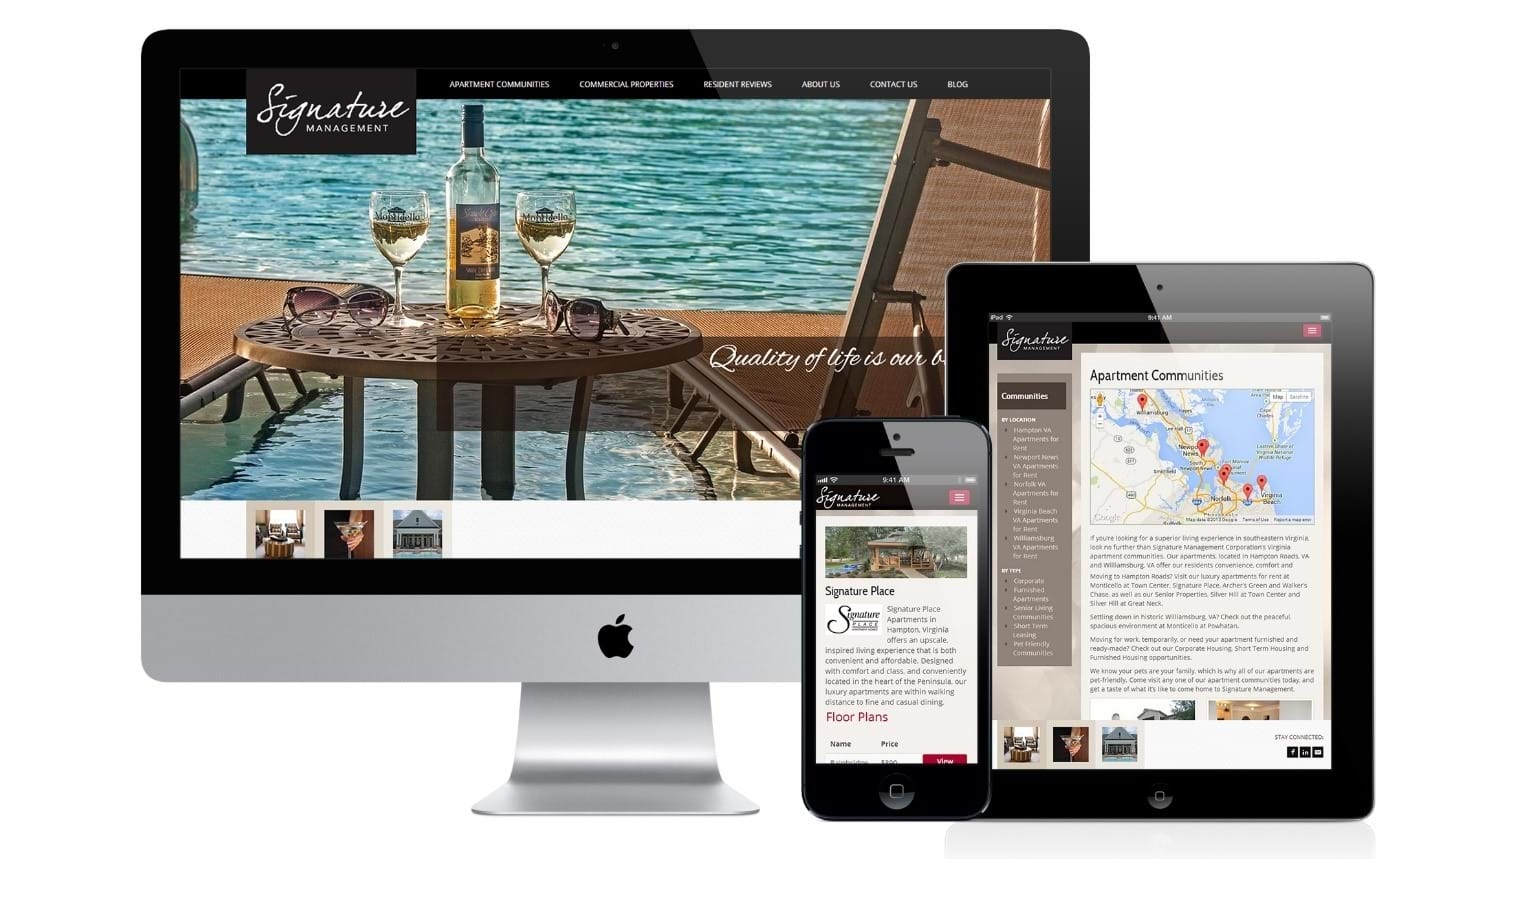 Responsive design of website